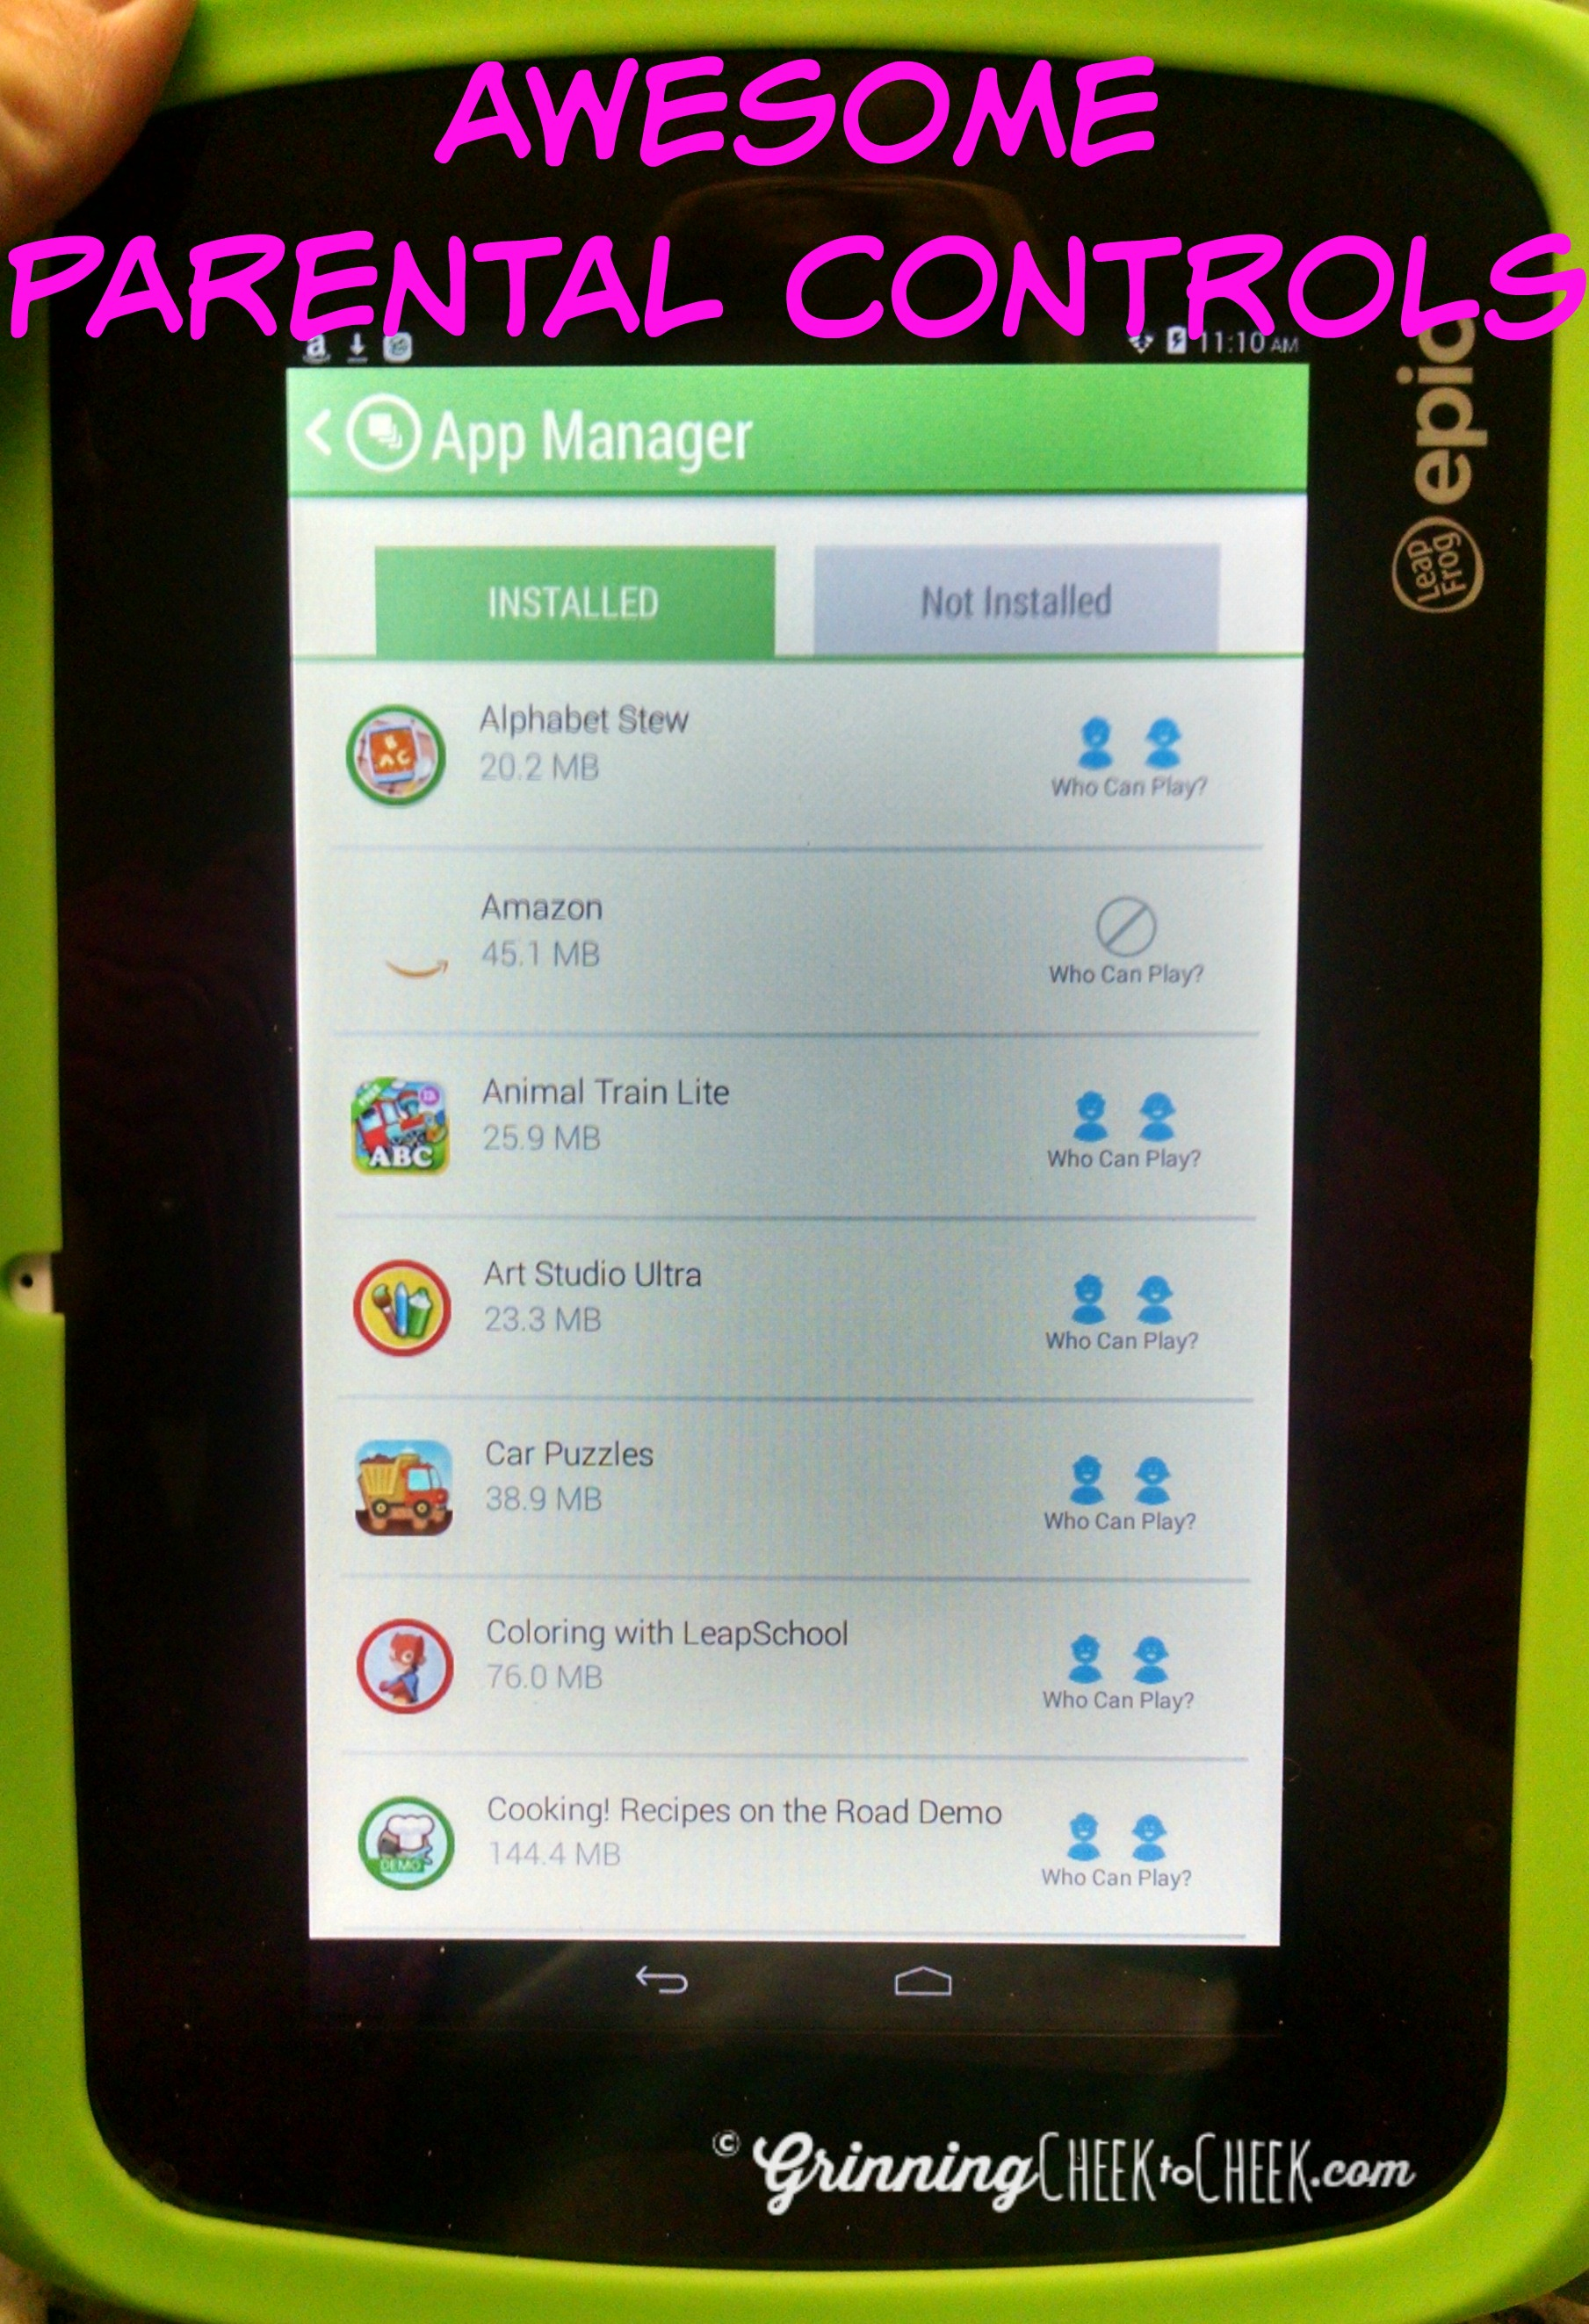 LeapFrog Tablet is Epic! - Grinning Cheek to Cheek